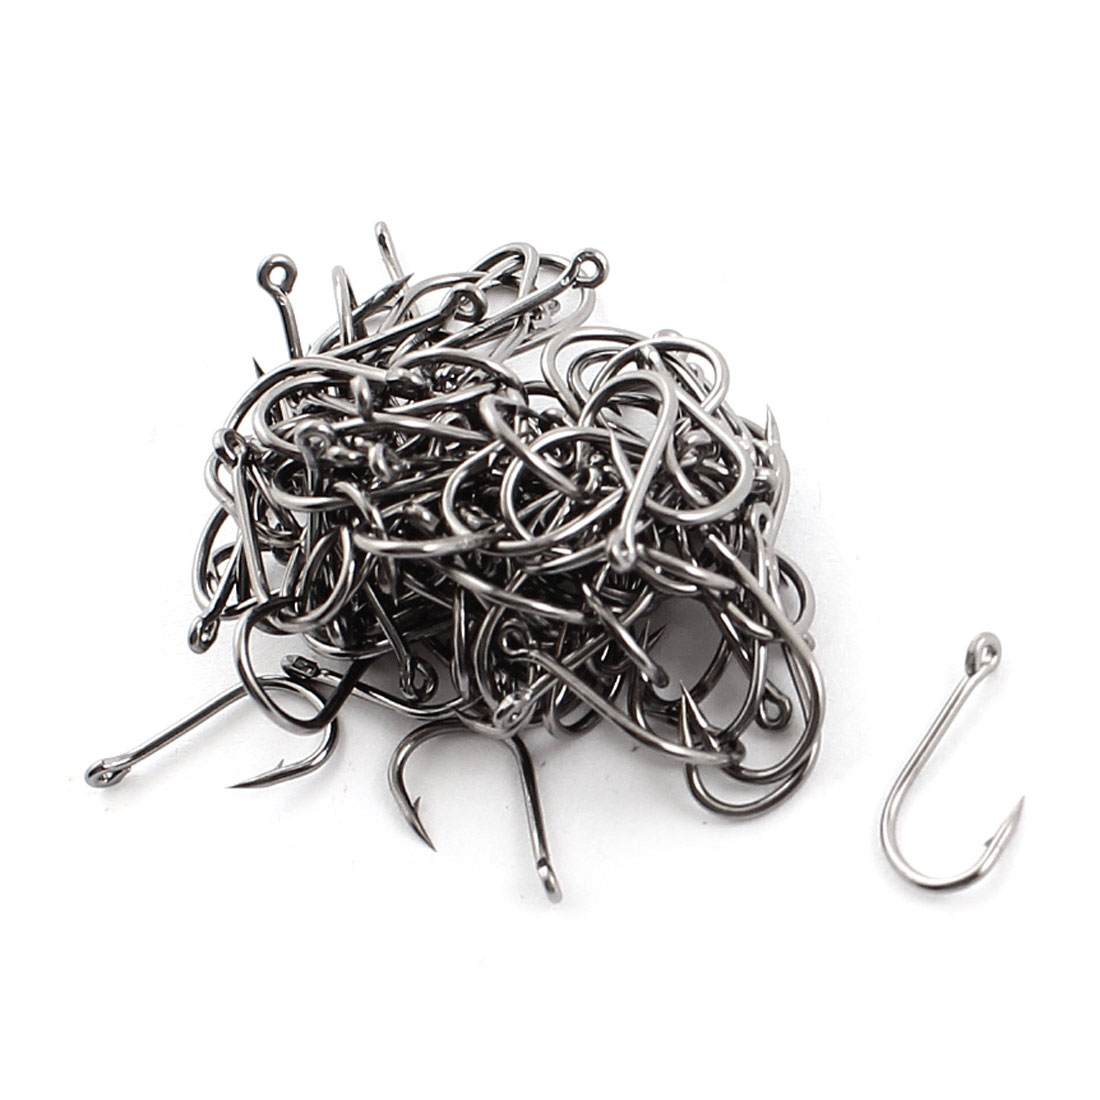 100 Pcs Silver Tone Metal Eye Hole Barbed Fishing Hook Fishhook 5#